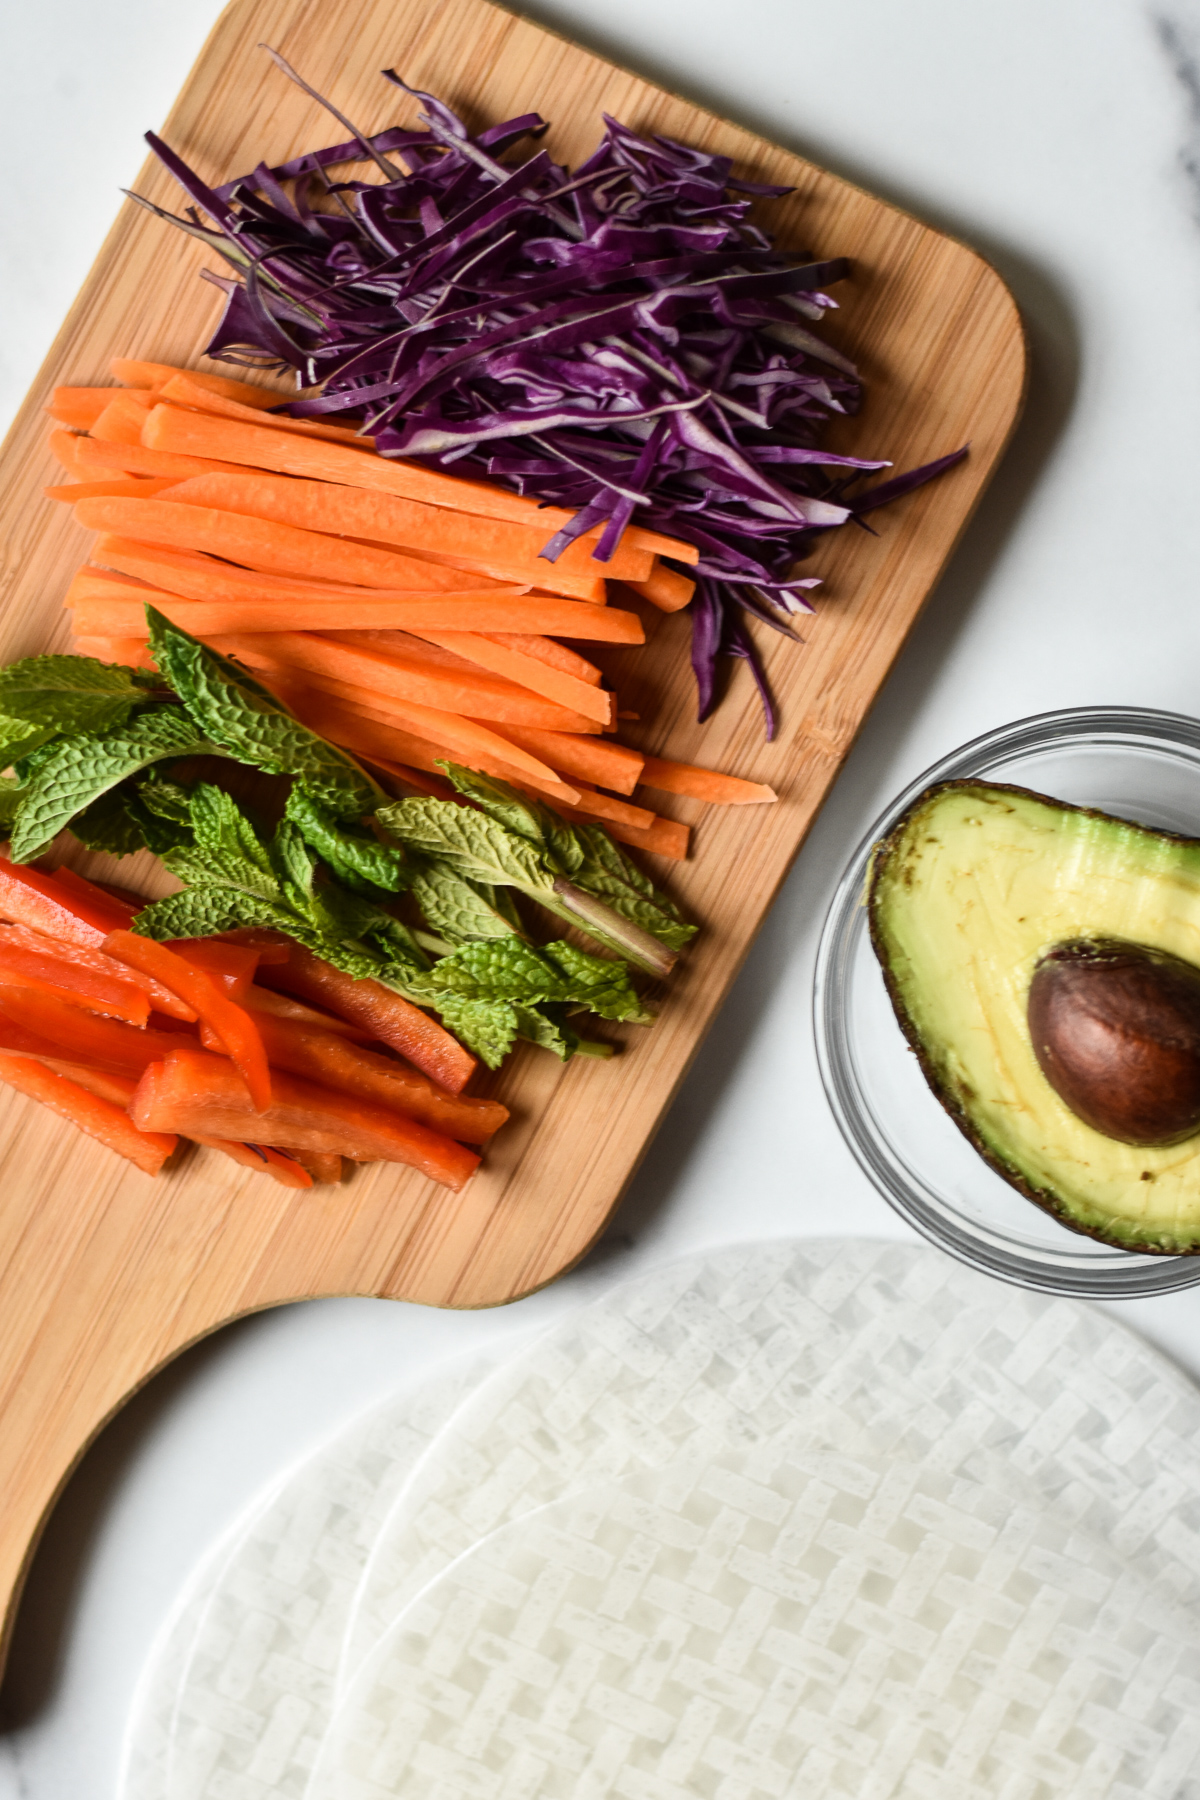 ingredients for summer rolls on a wooden cutting board